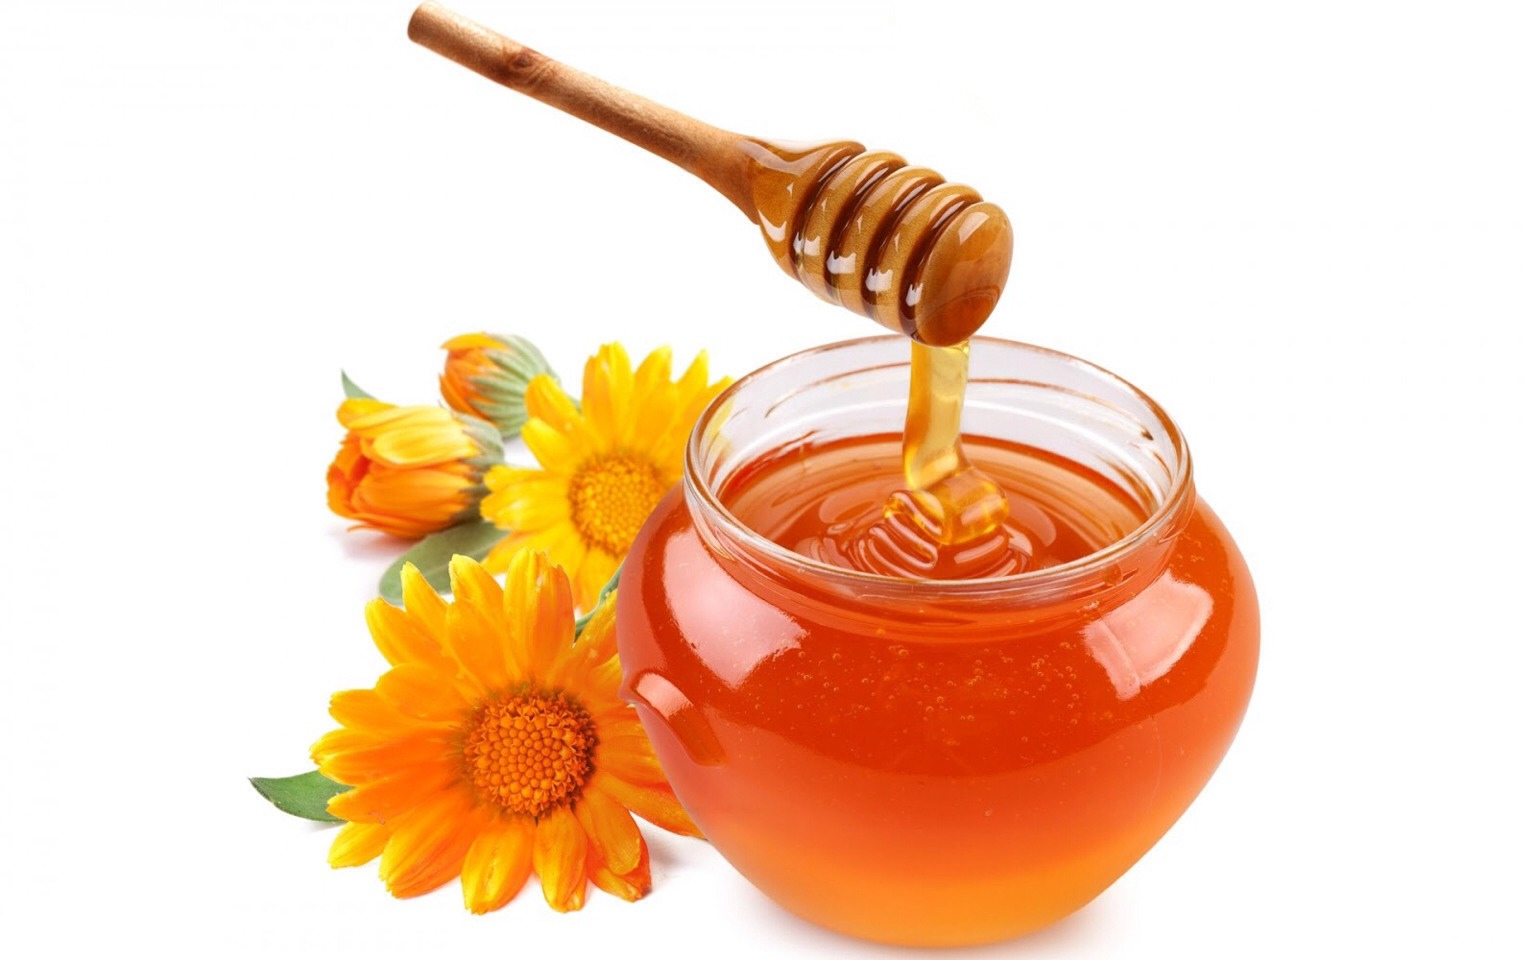 If the mask burns your skin then use more honey and less cinnamon. Do not use this mask if you have very sensitive skin.